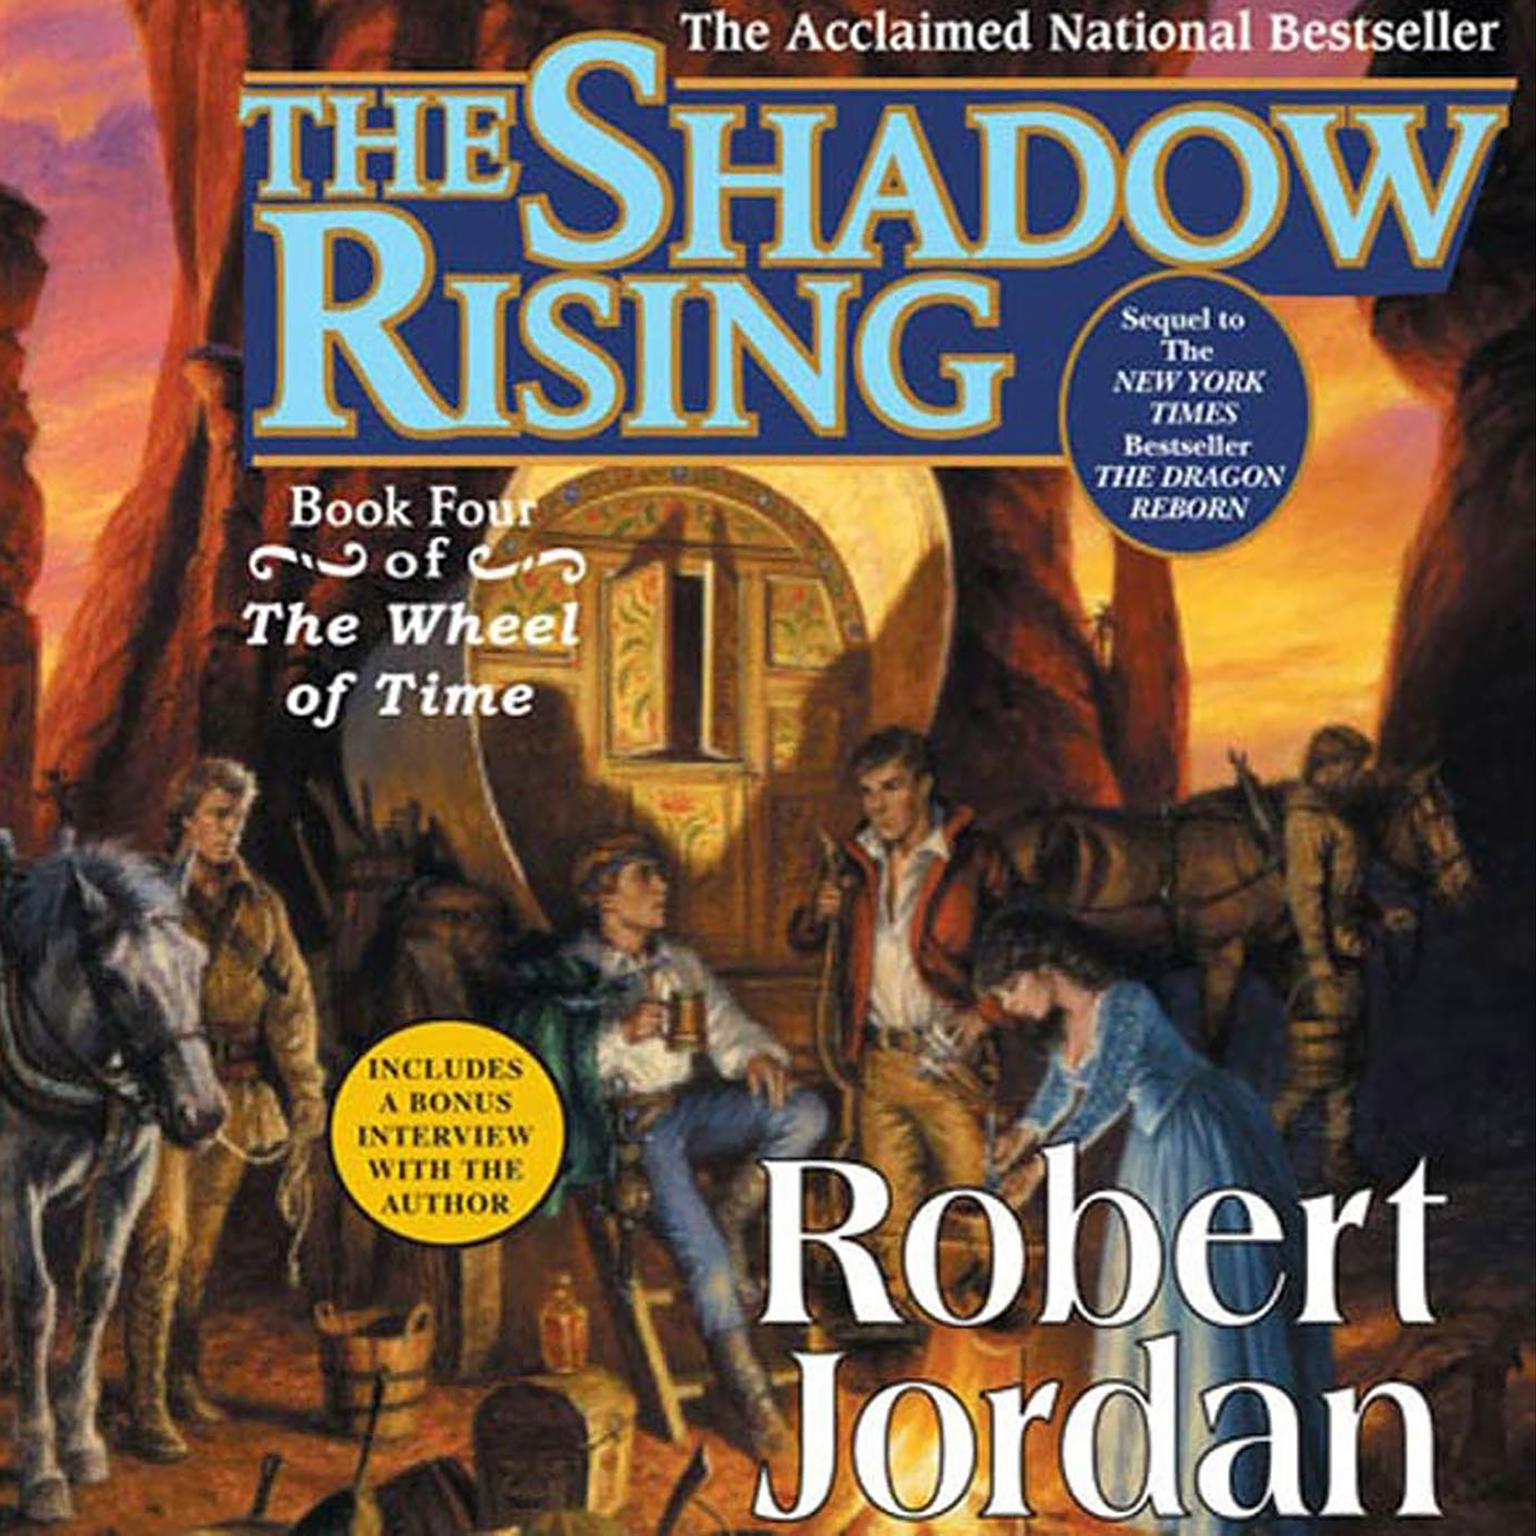 Printable The Shadow Rising: Book Four of 'The Wheel of Time' Audiobook Cover Art